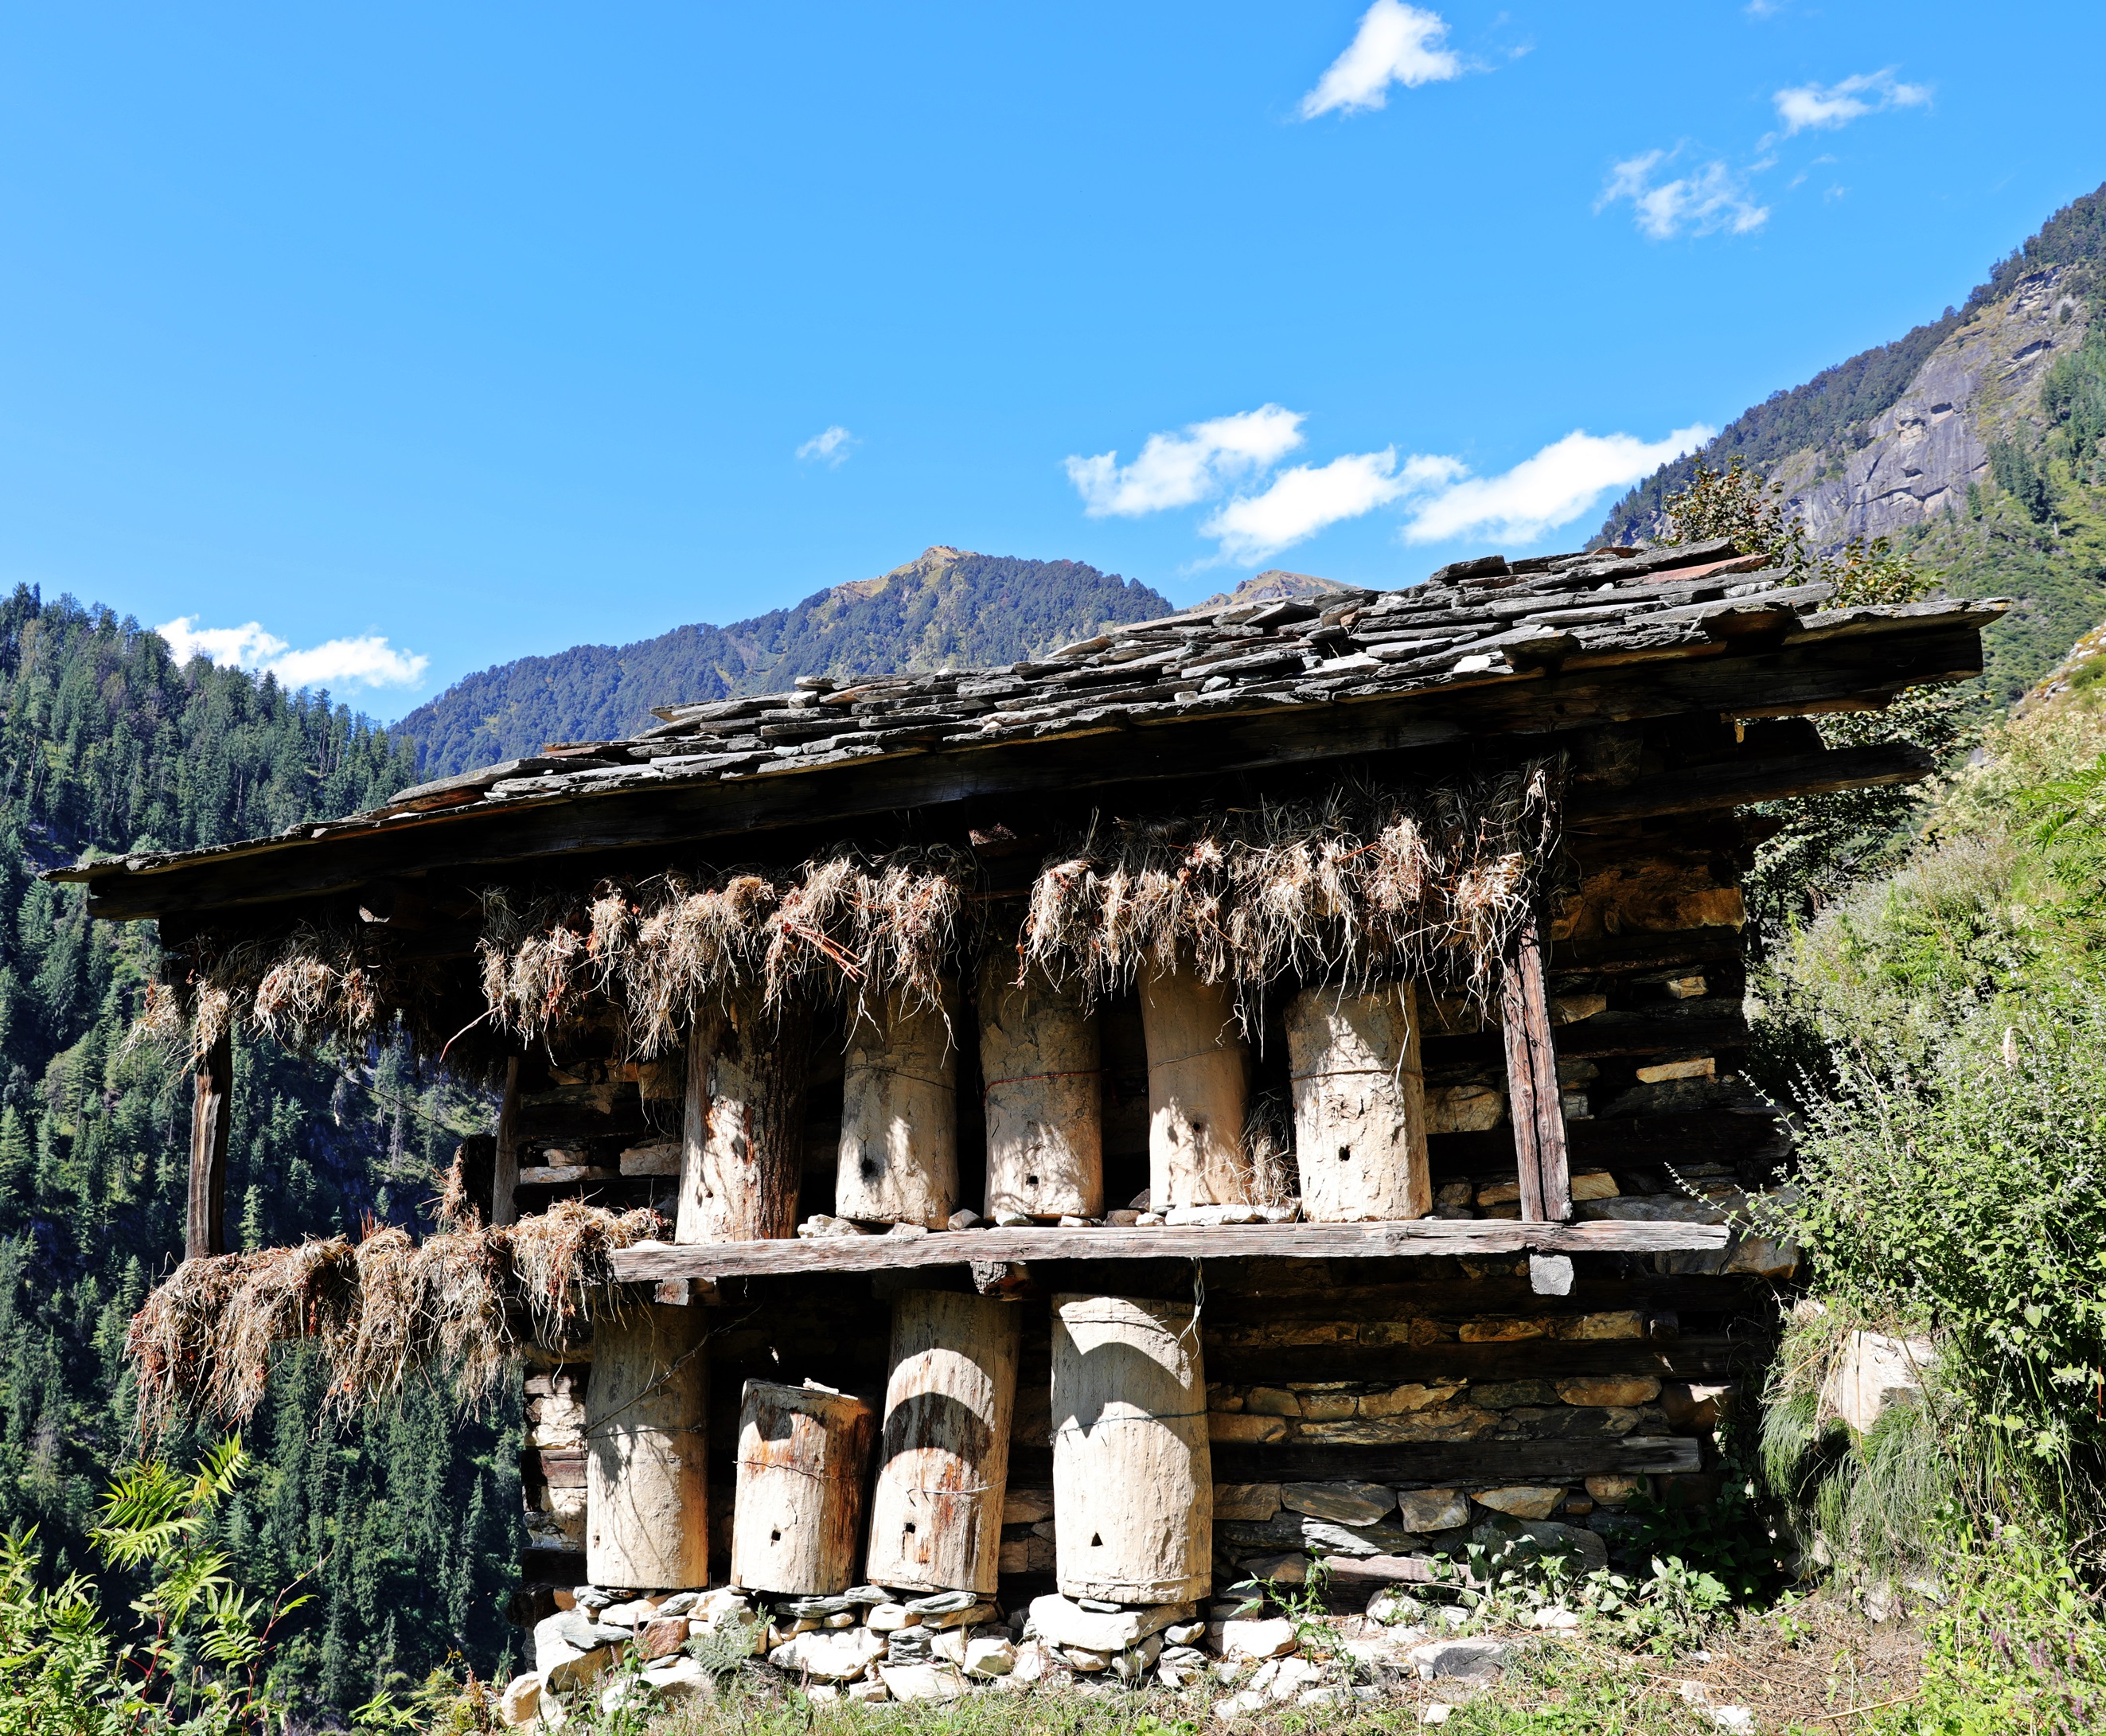 Shrine, Malana, Himachal Pradesh